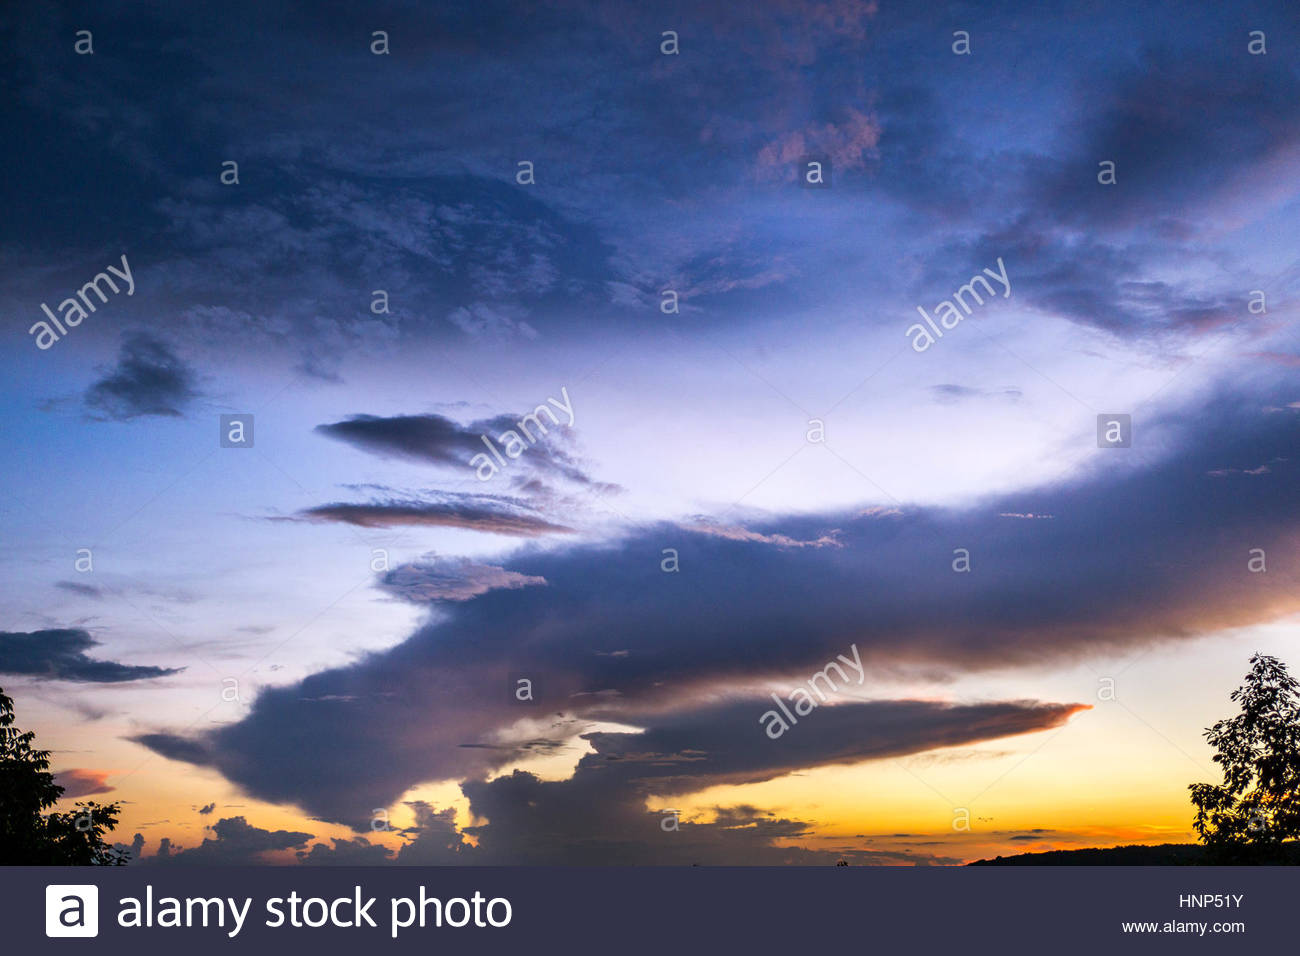 The conclusion of an extraordinary sunset at Morgans Steep. - Stock Image